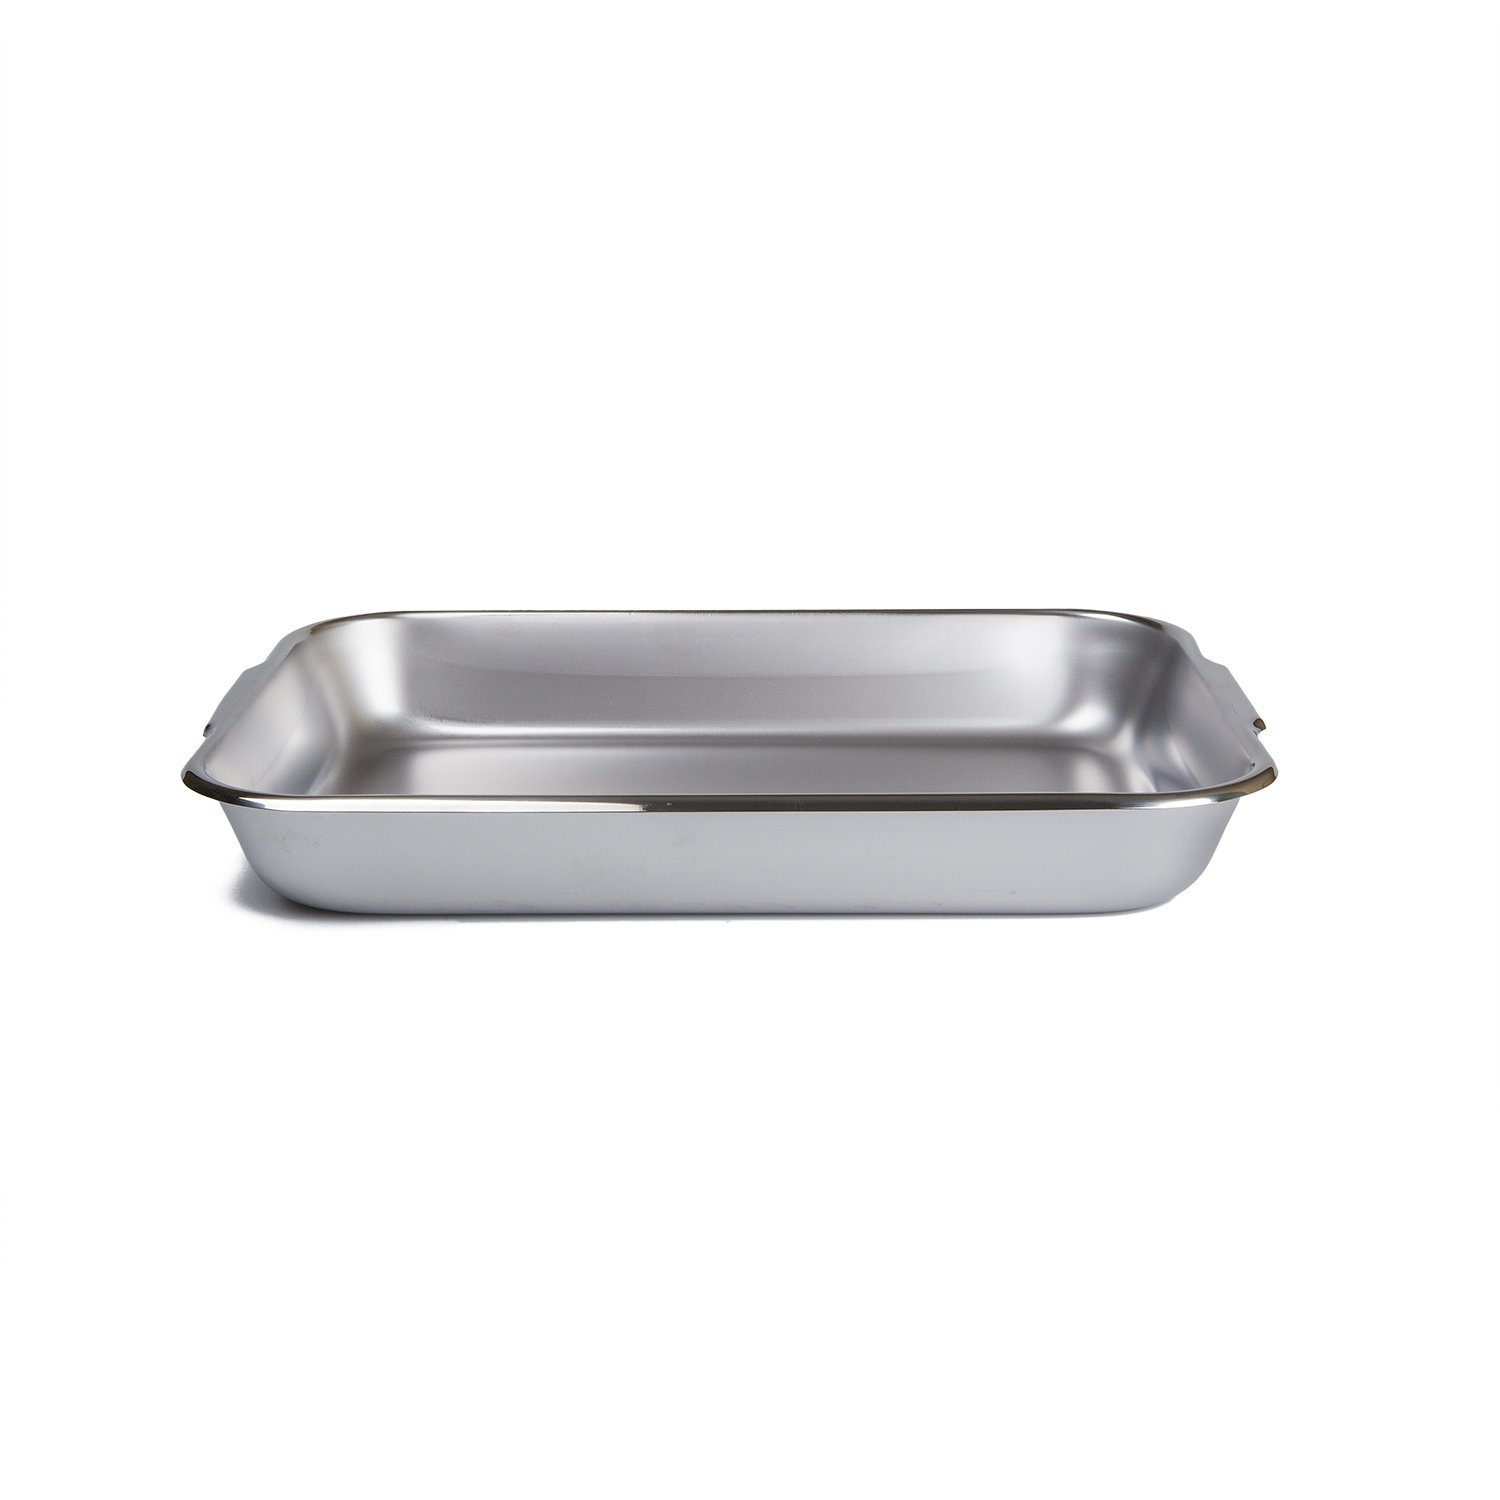 Medegen Medical Products 61250 Instrument Tray, 22 Gauge, 16-1/8'' x 11-1/8'' Size, Stainless Steel